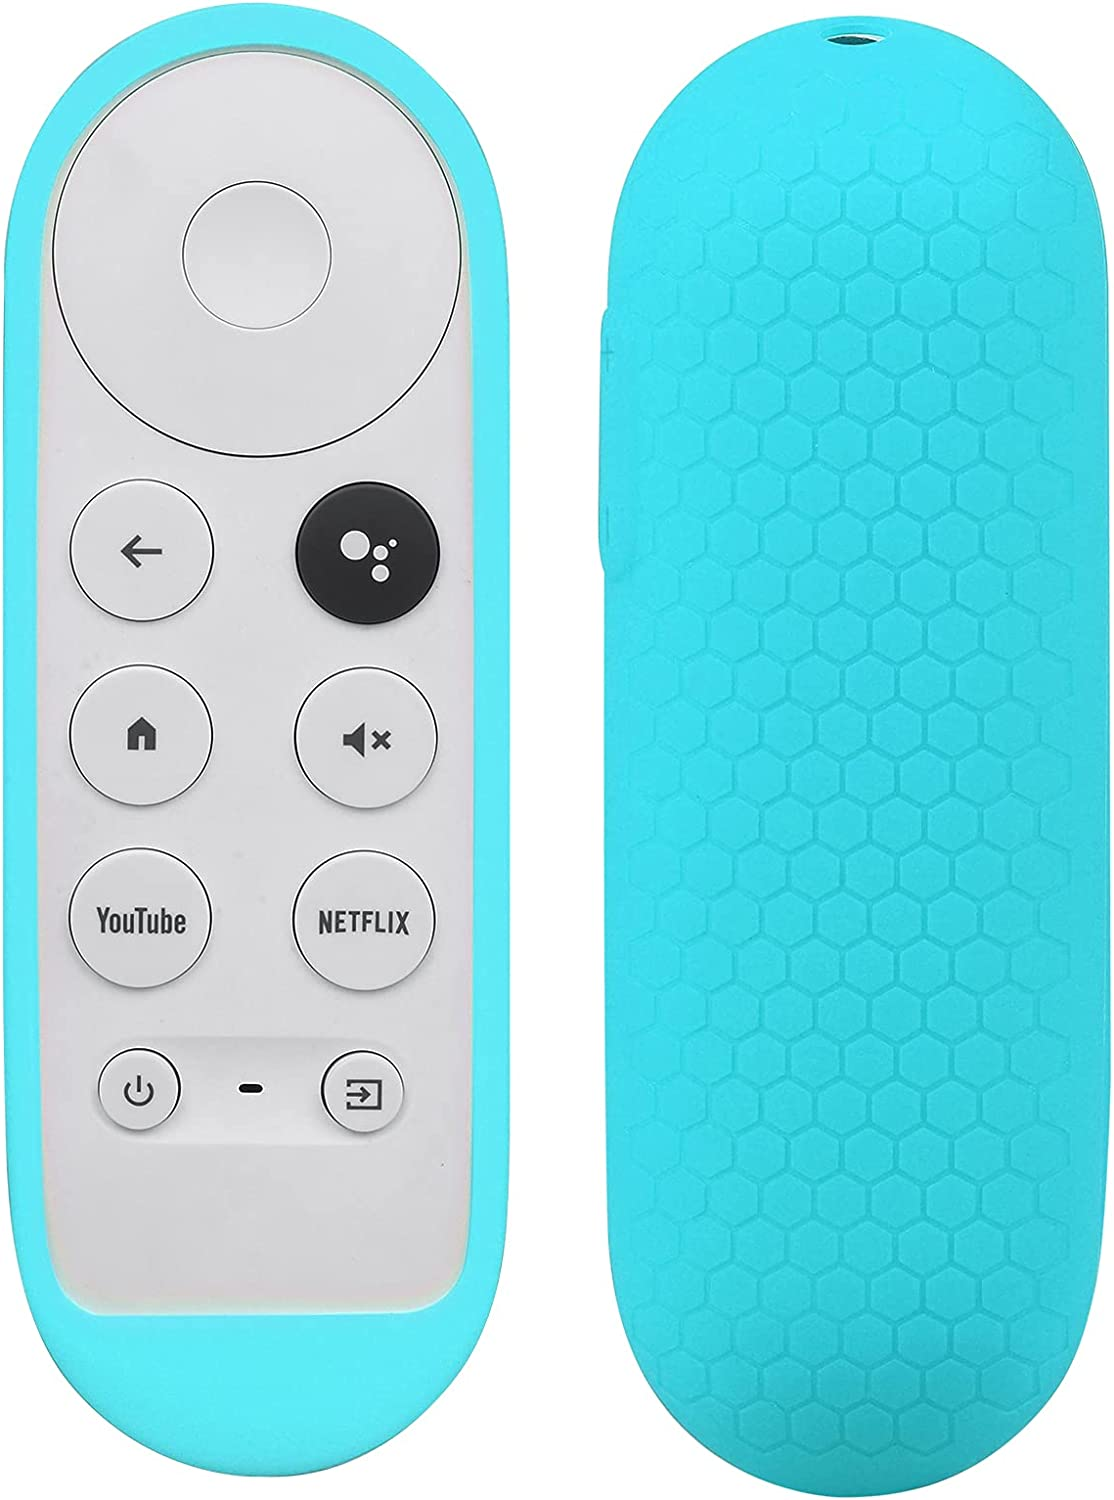 Silicone Case Compatible with Google TV 2020 Voice Remote - SYMOTOP Shockproof Protective Remote Cover Skin Compatible with Chromecast with Google TV 2020 Voice Remote Control - Blue